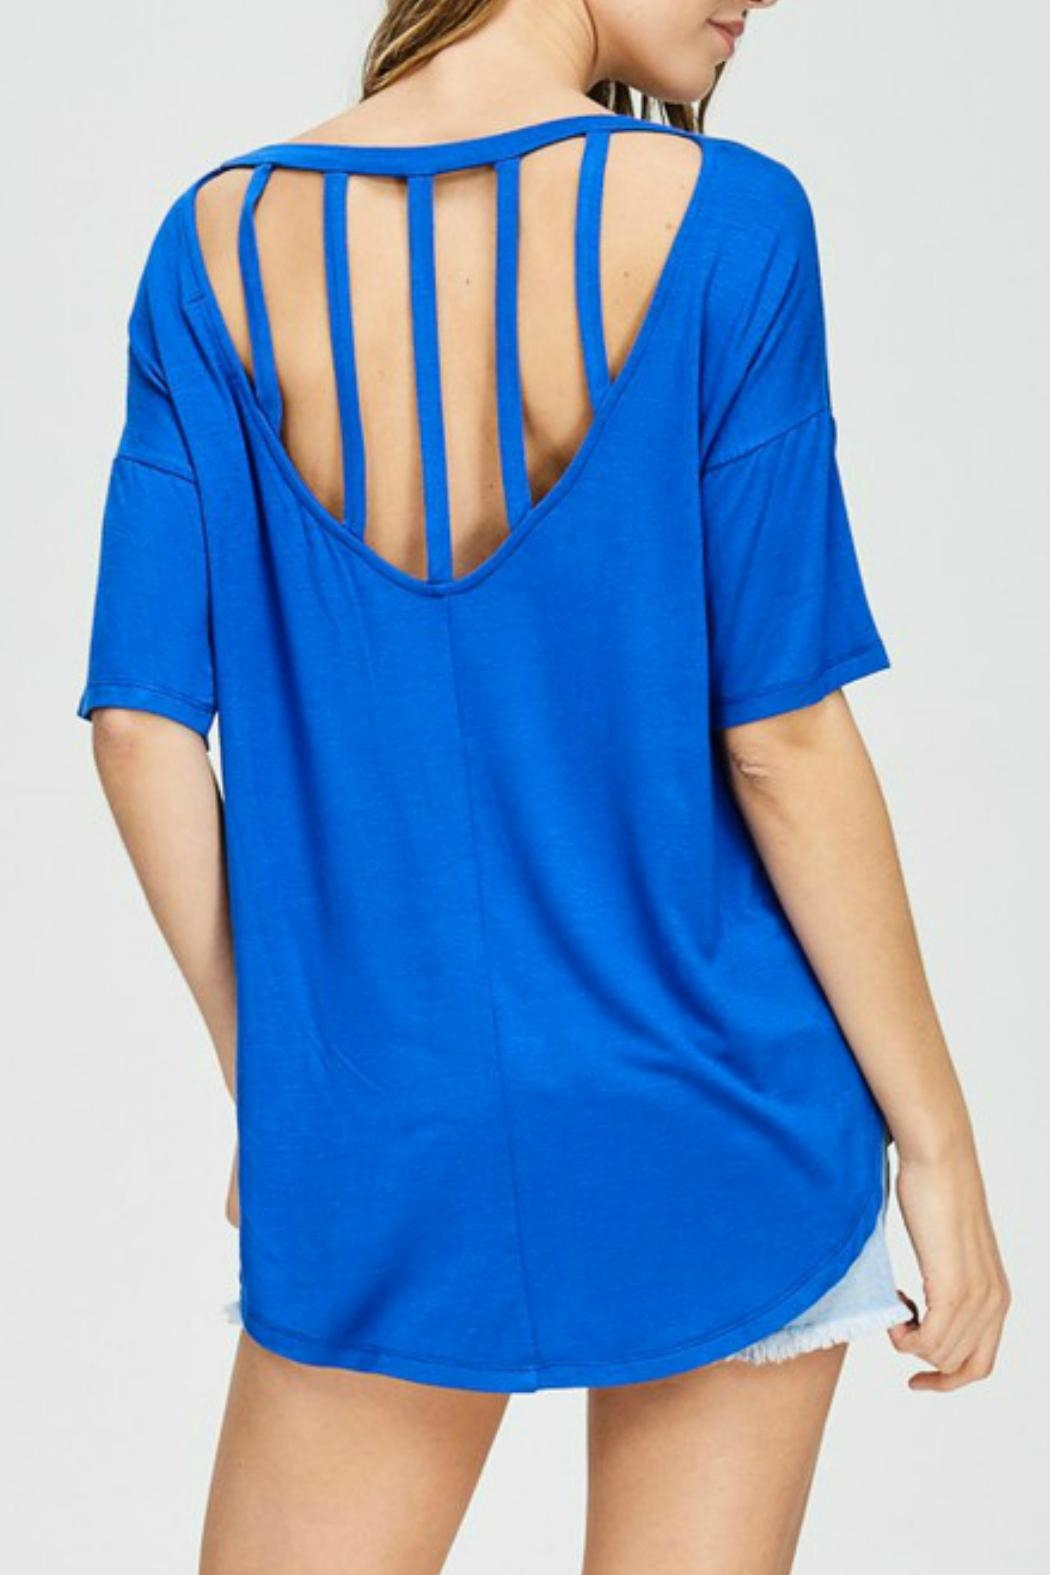 Cherish Cobalt Blue Top - Main Image